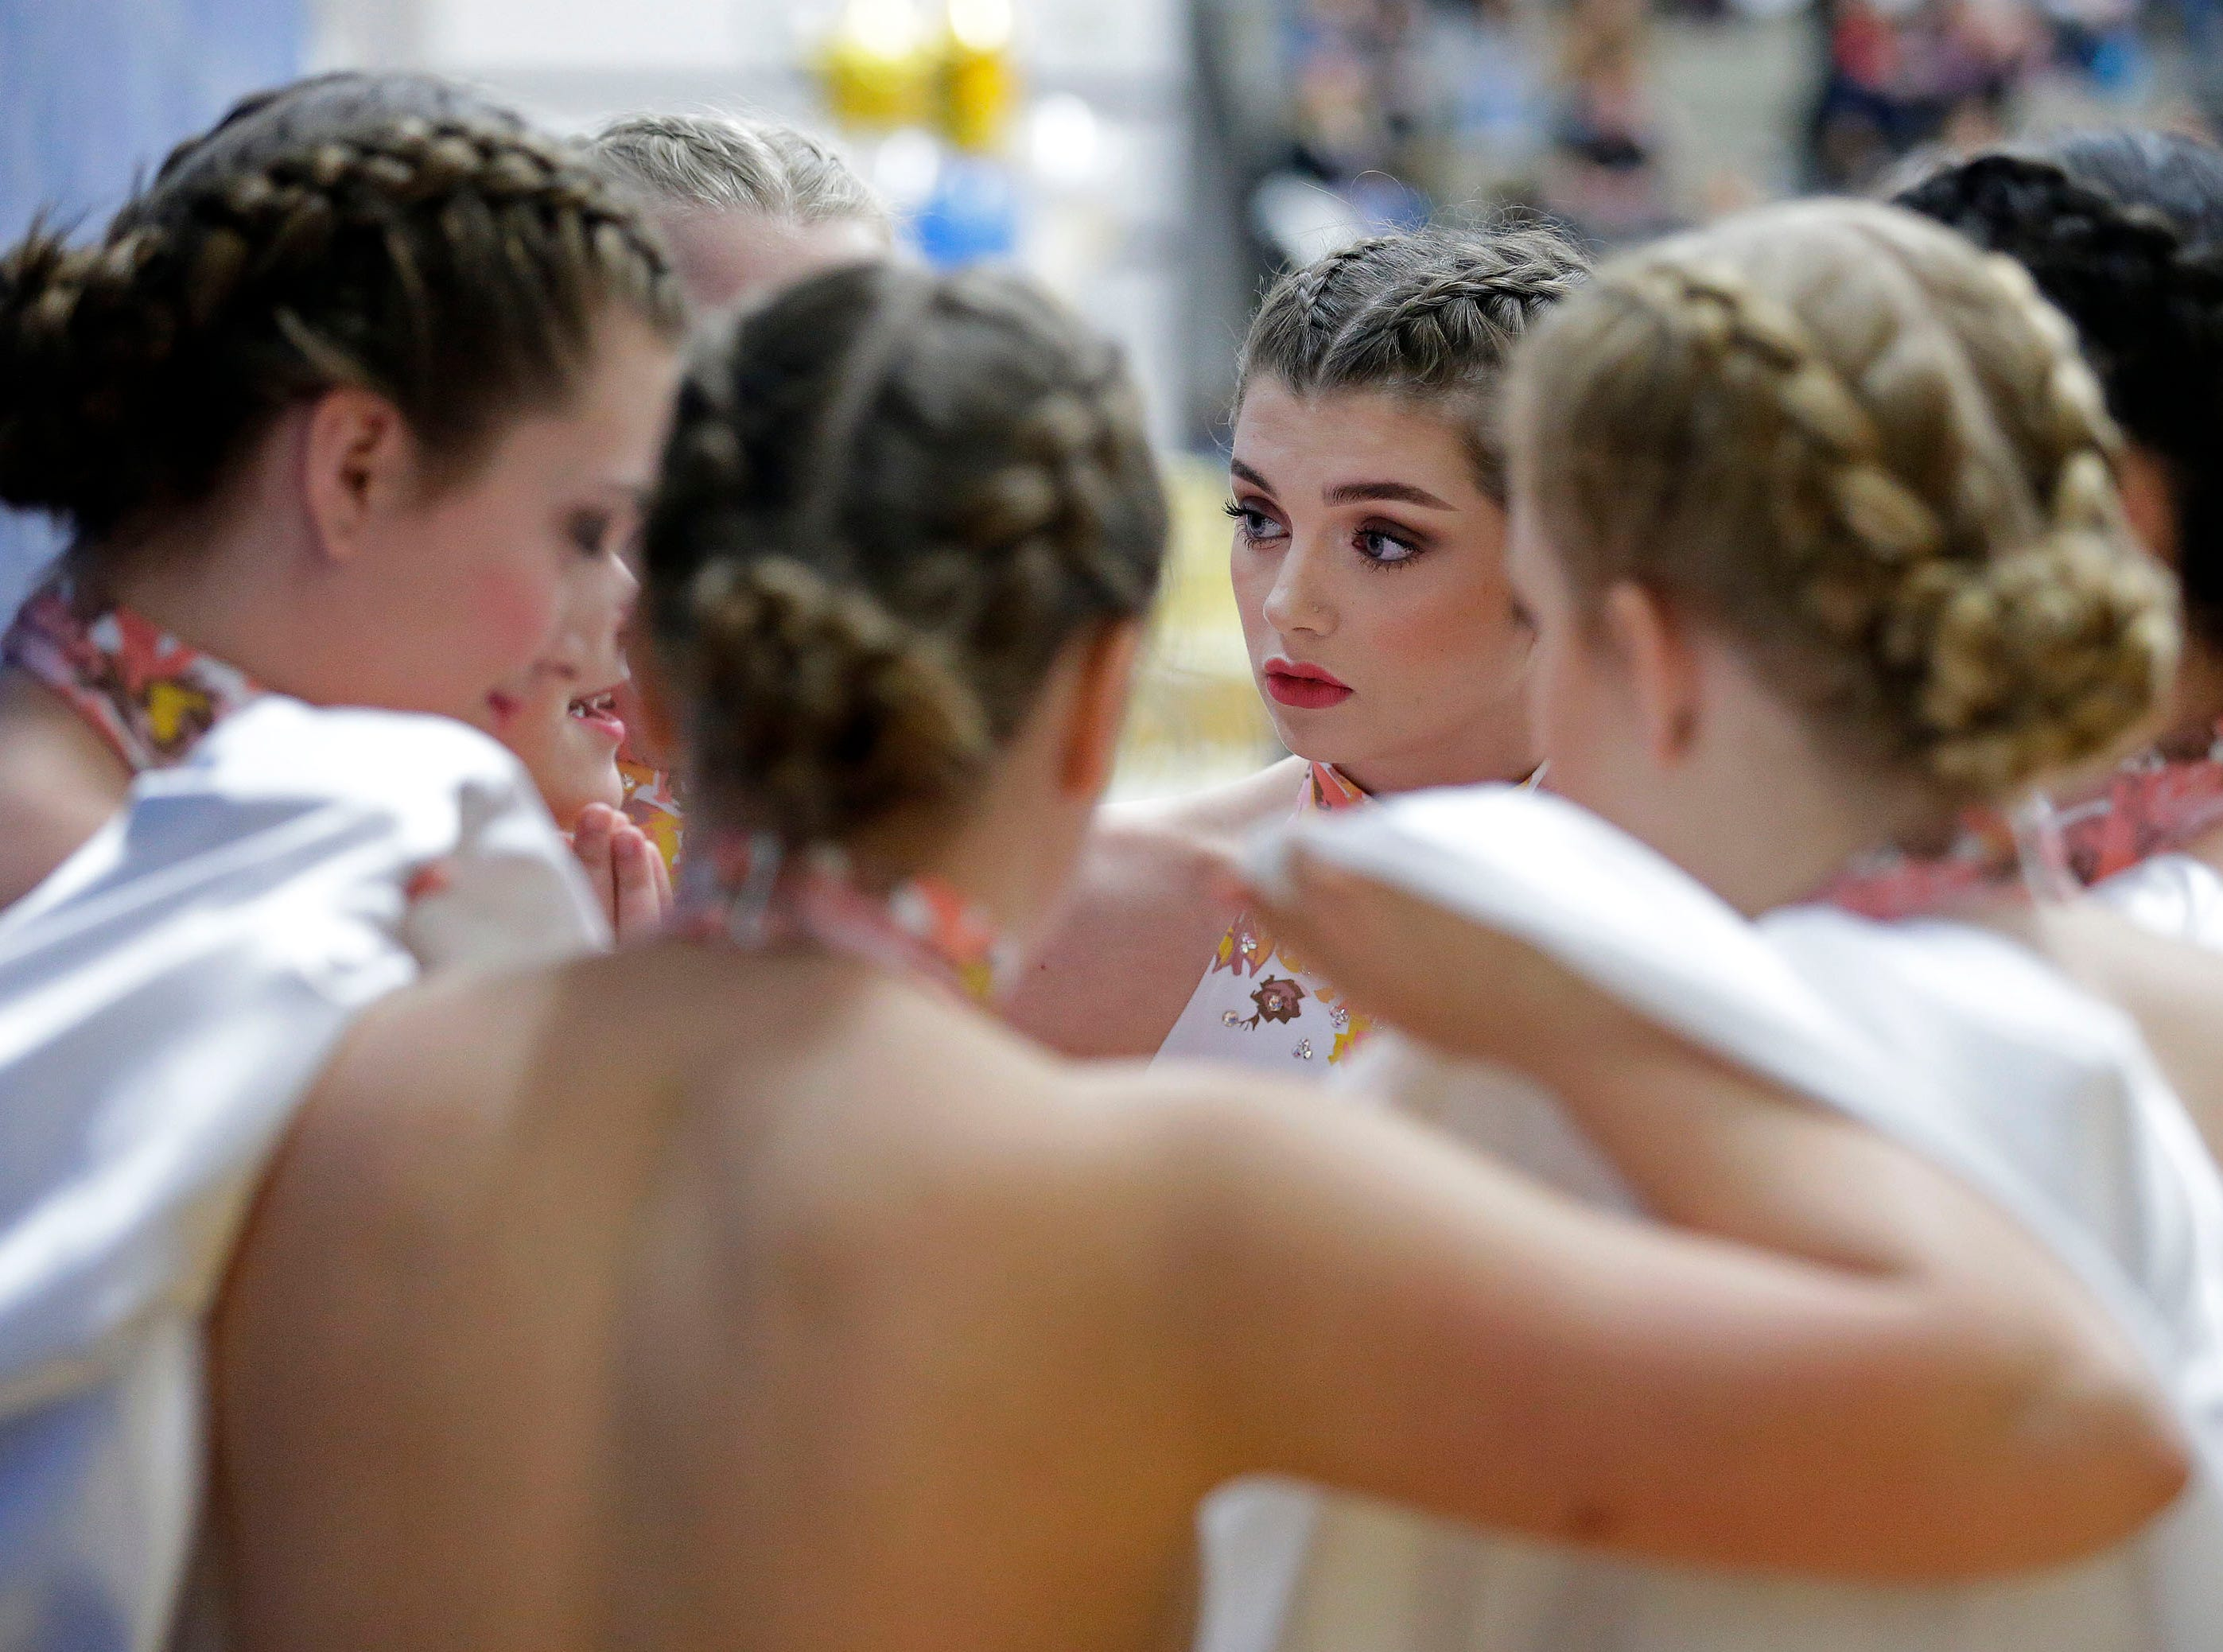 The Oconto Falls team gets ready to compete in the Varsity Jazz Division as the Lightning Bolt Explosion Cheer and Dance competition takes place Saturday, January 5, 2019, at Appleton North High School in Appleton, Wis.Ron Page/USA TODAY NETWORK-Wisconsin